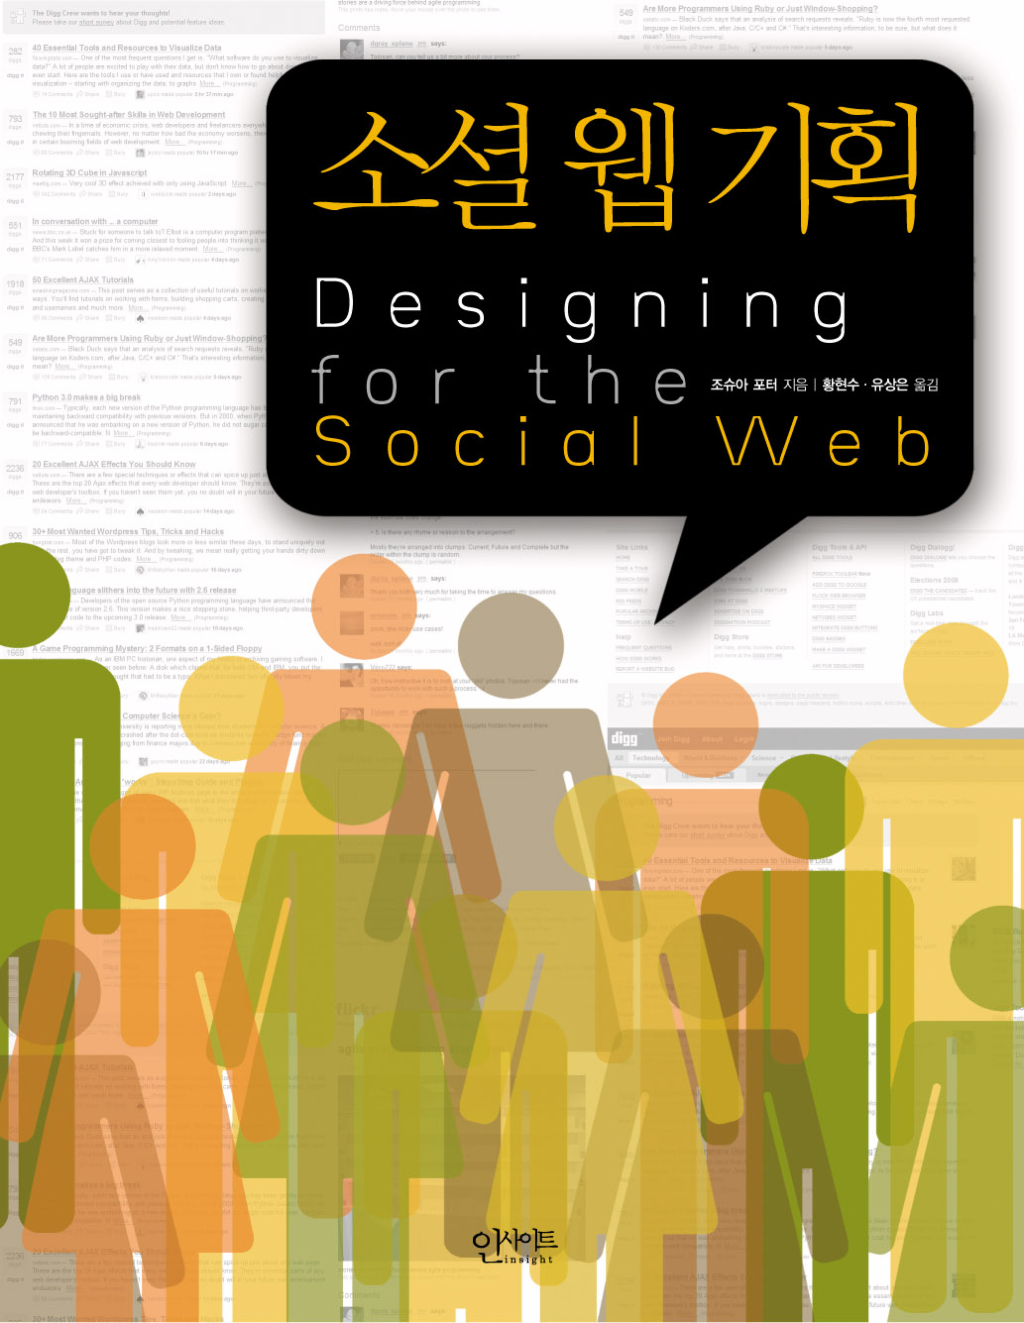 Korean version of Designing for a Social Web